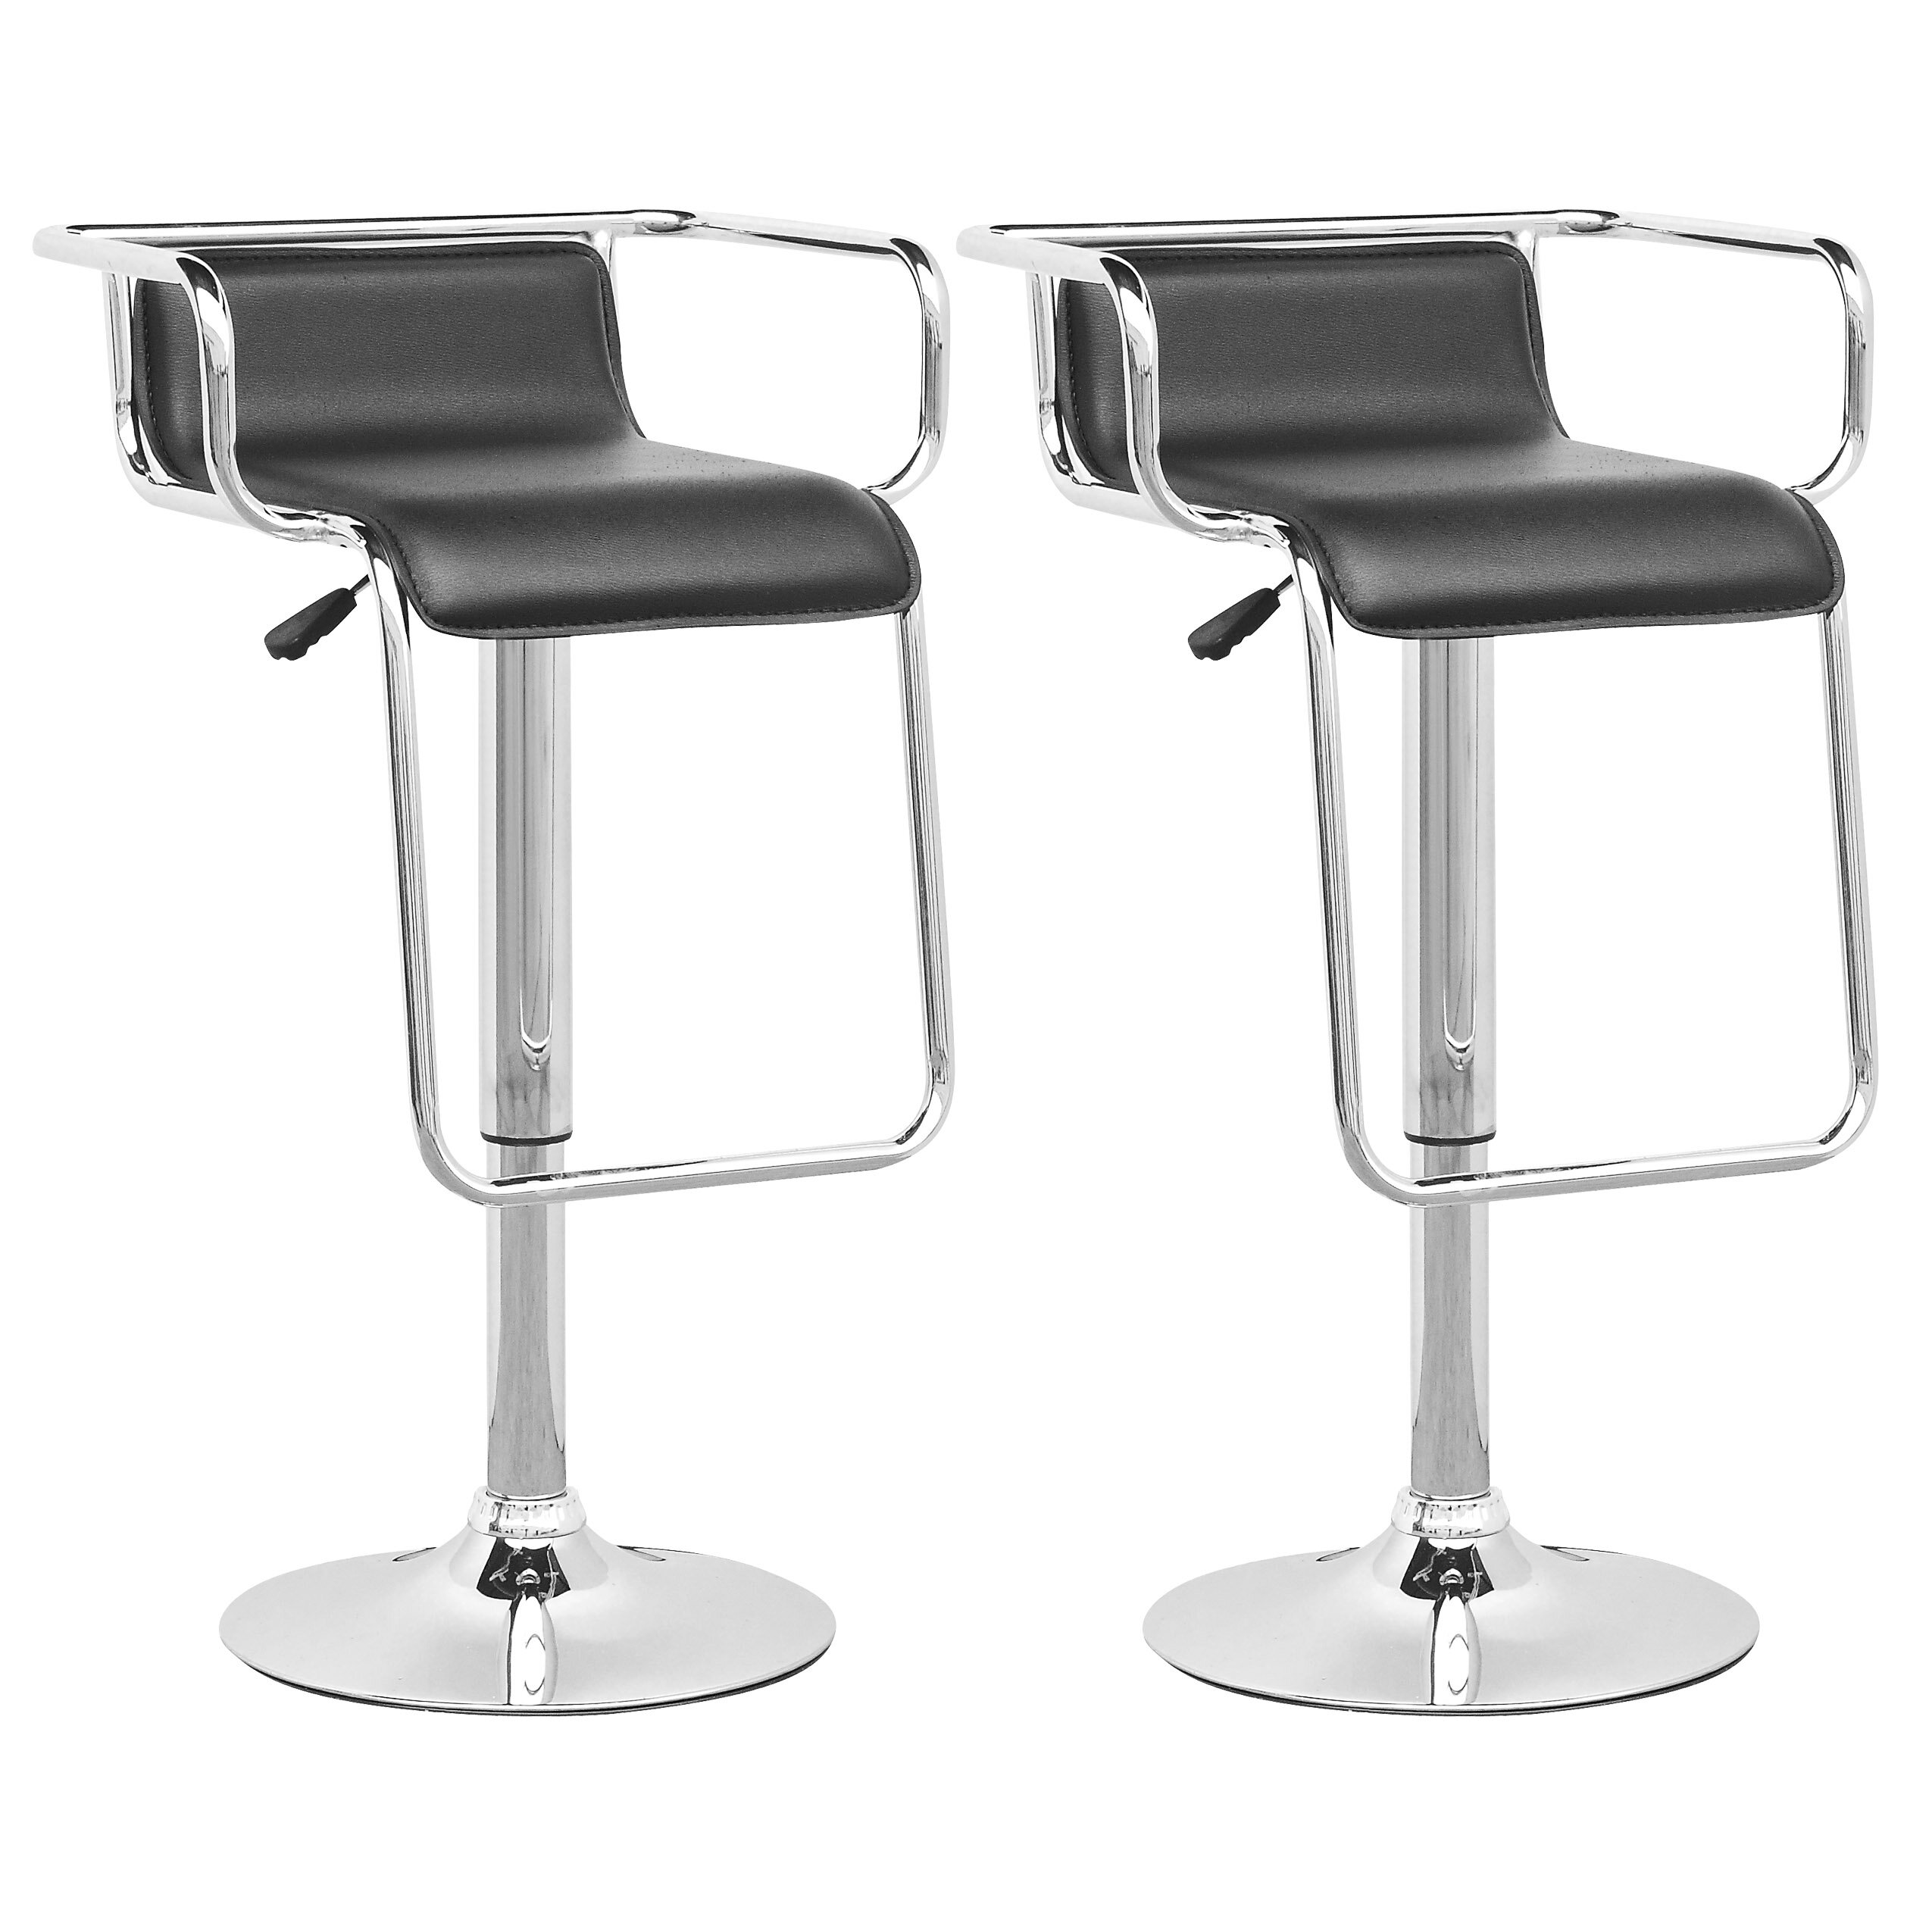 CorLiving Adjustable Height Swivel Bar Stool amp Reviews  : CorLiving Adjustable Height Swivel Bar Stool from www.wayfair.com size 2550 x 2550 jpeg 453kB